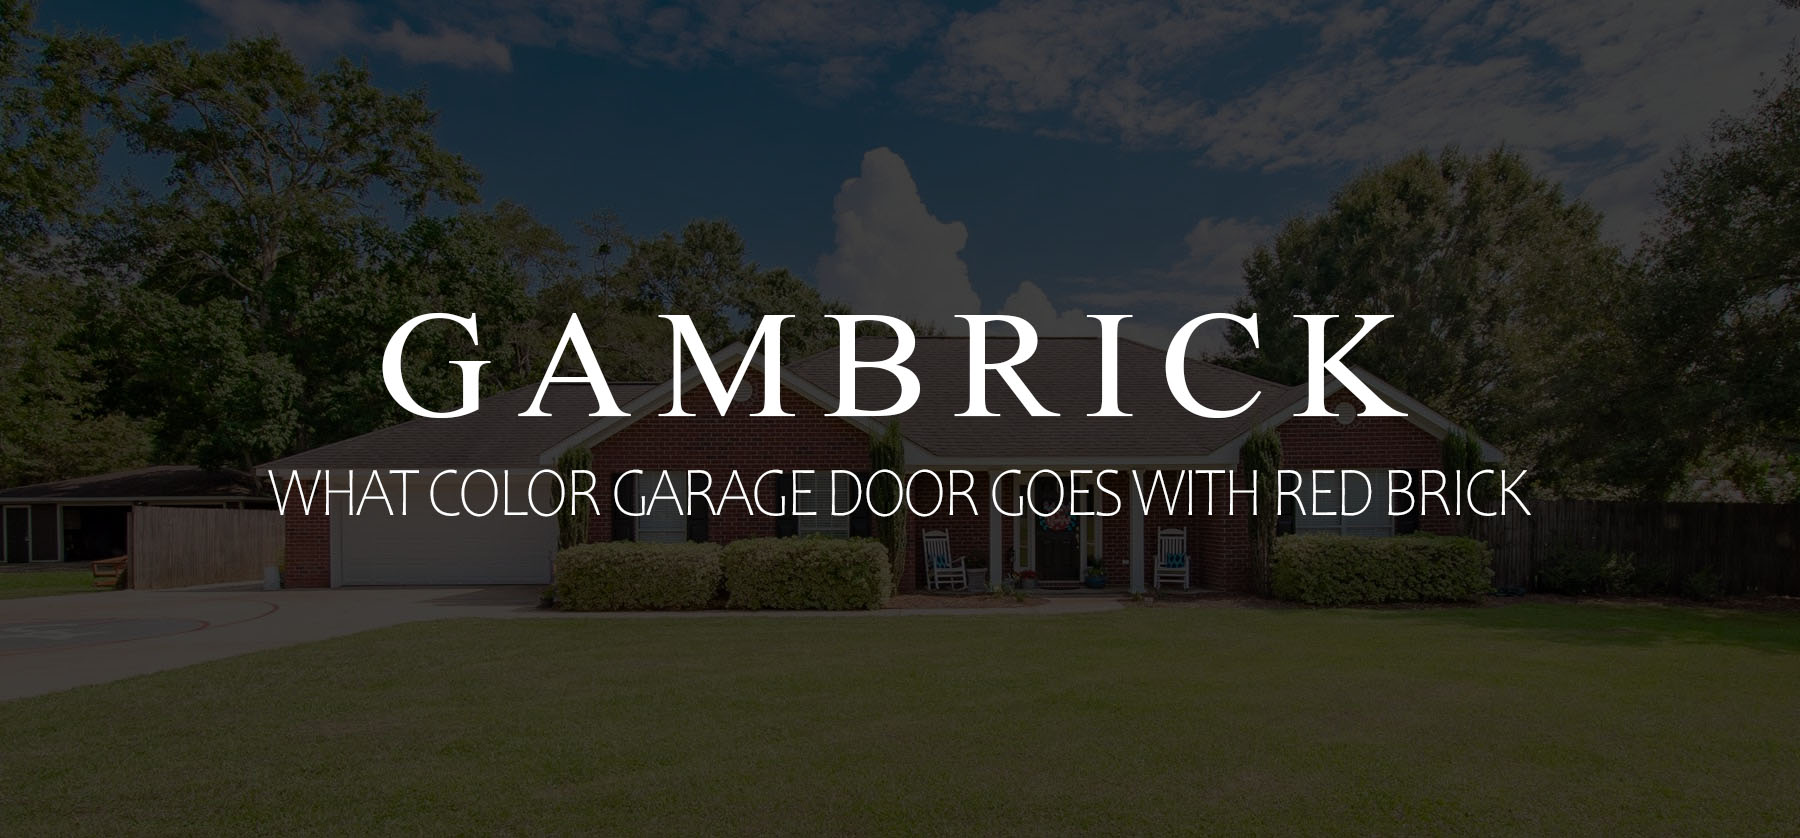 What color garage door goes with red brick banner picture 1